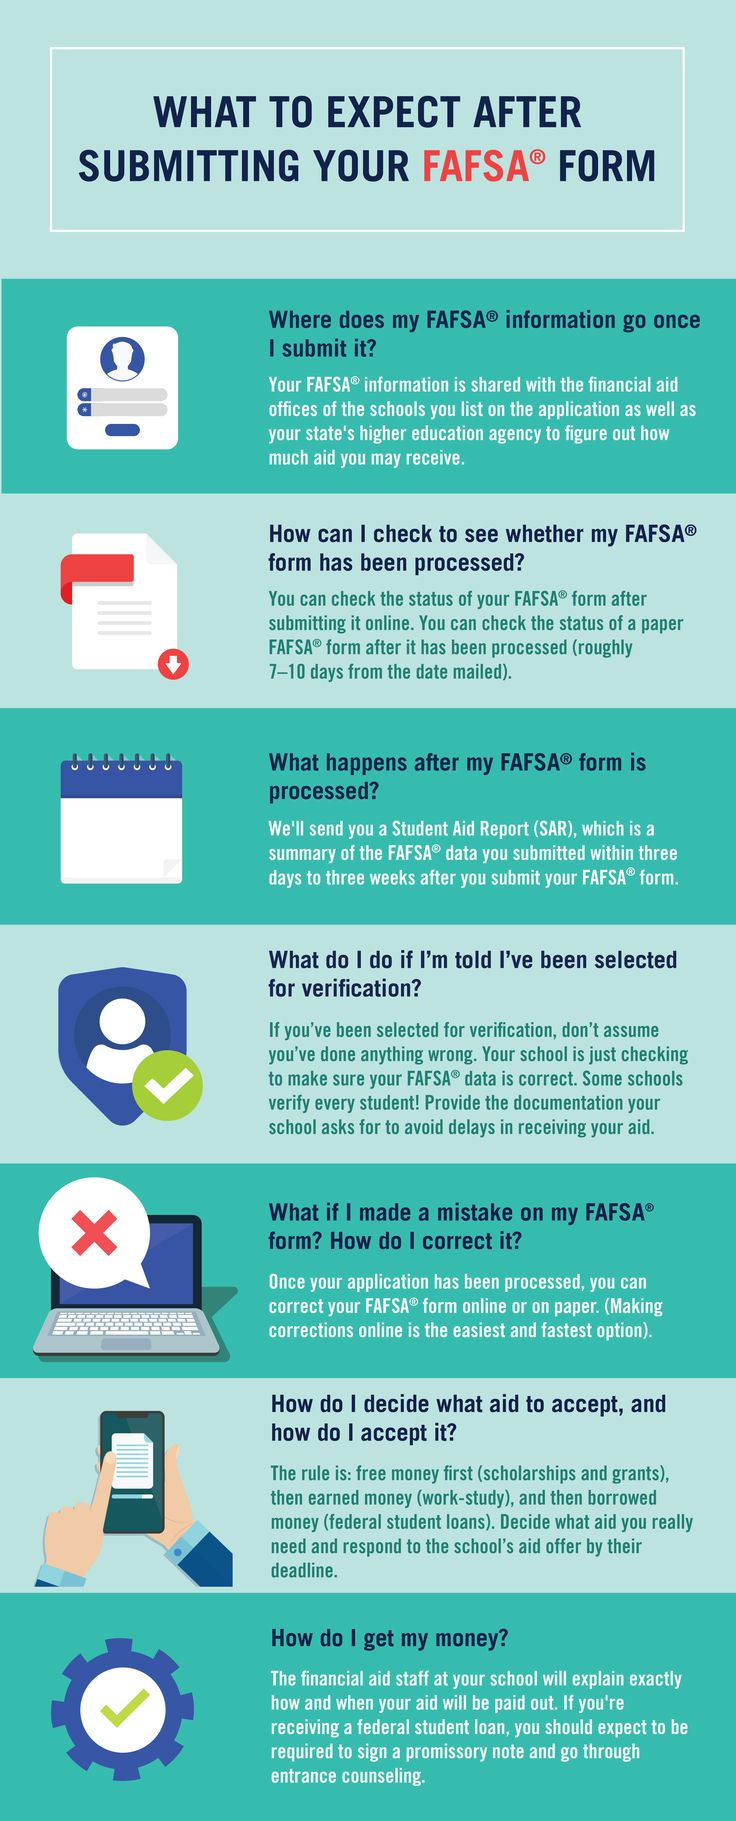 5 Things to Do After Filing Your FAFSA® Form Fafsa